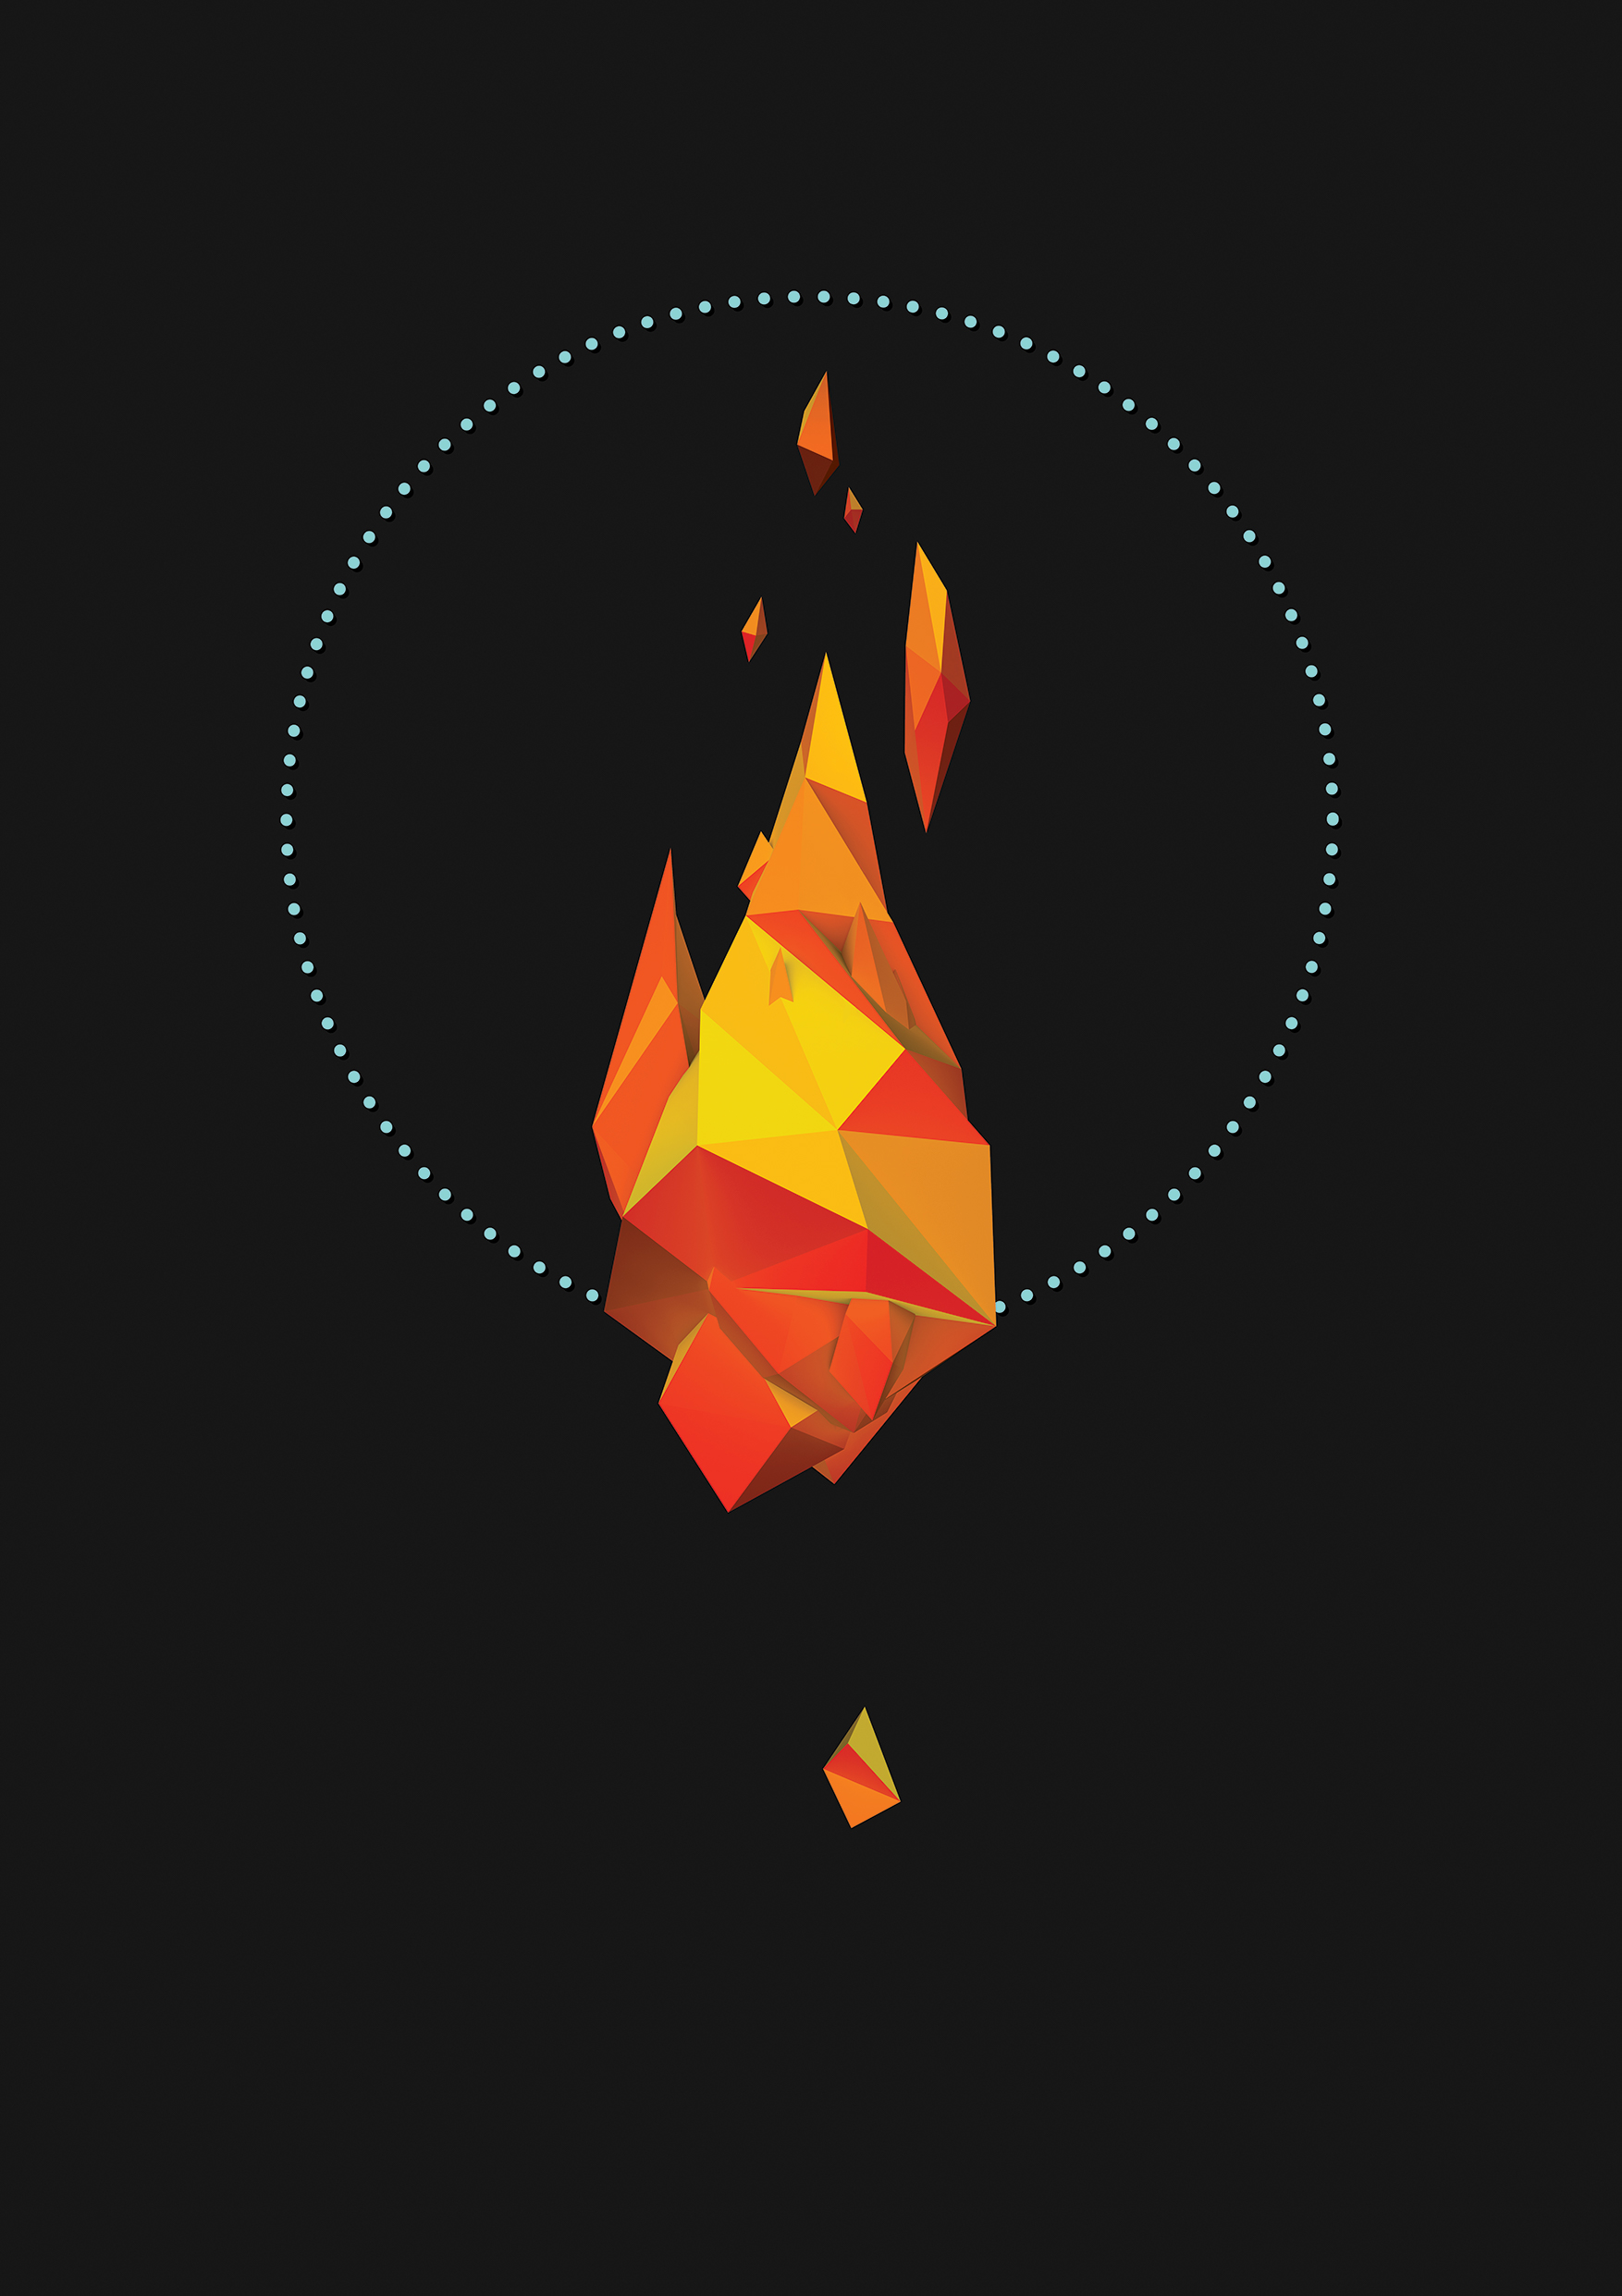 Miguel Gonzalez  'Fire' $450 framed | $300 unframed